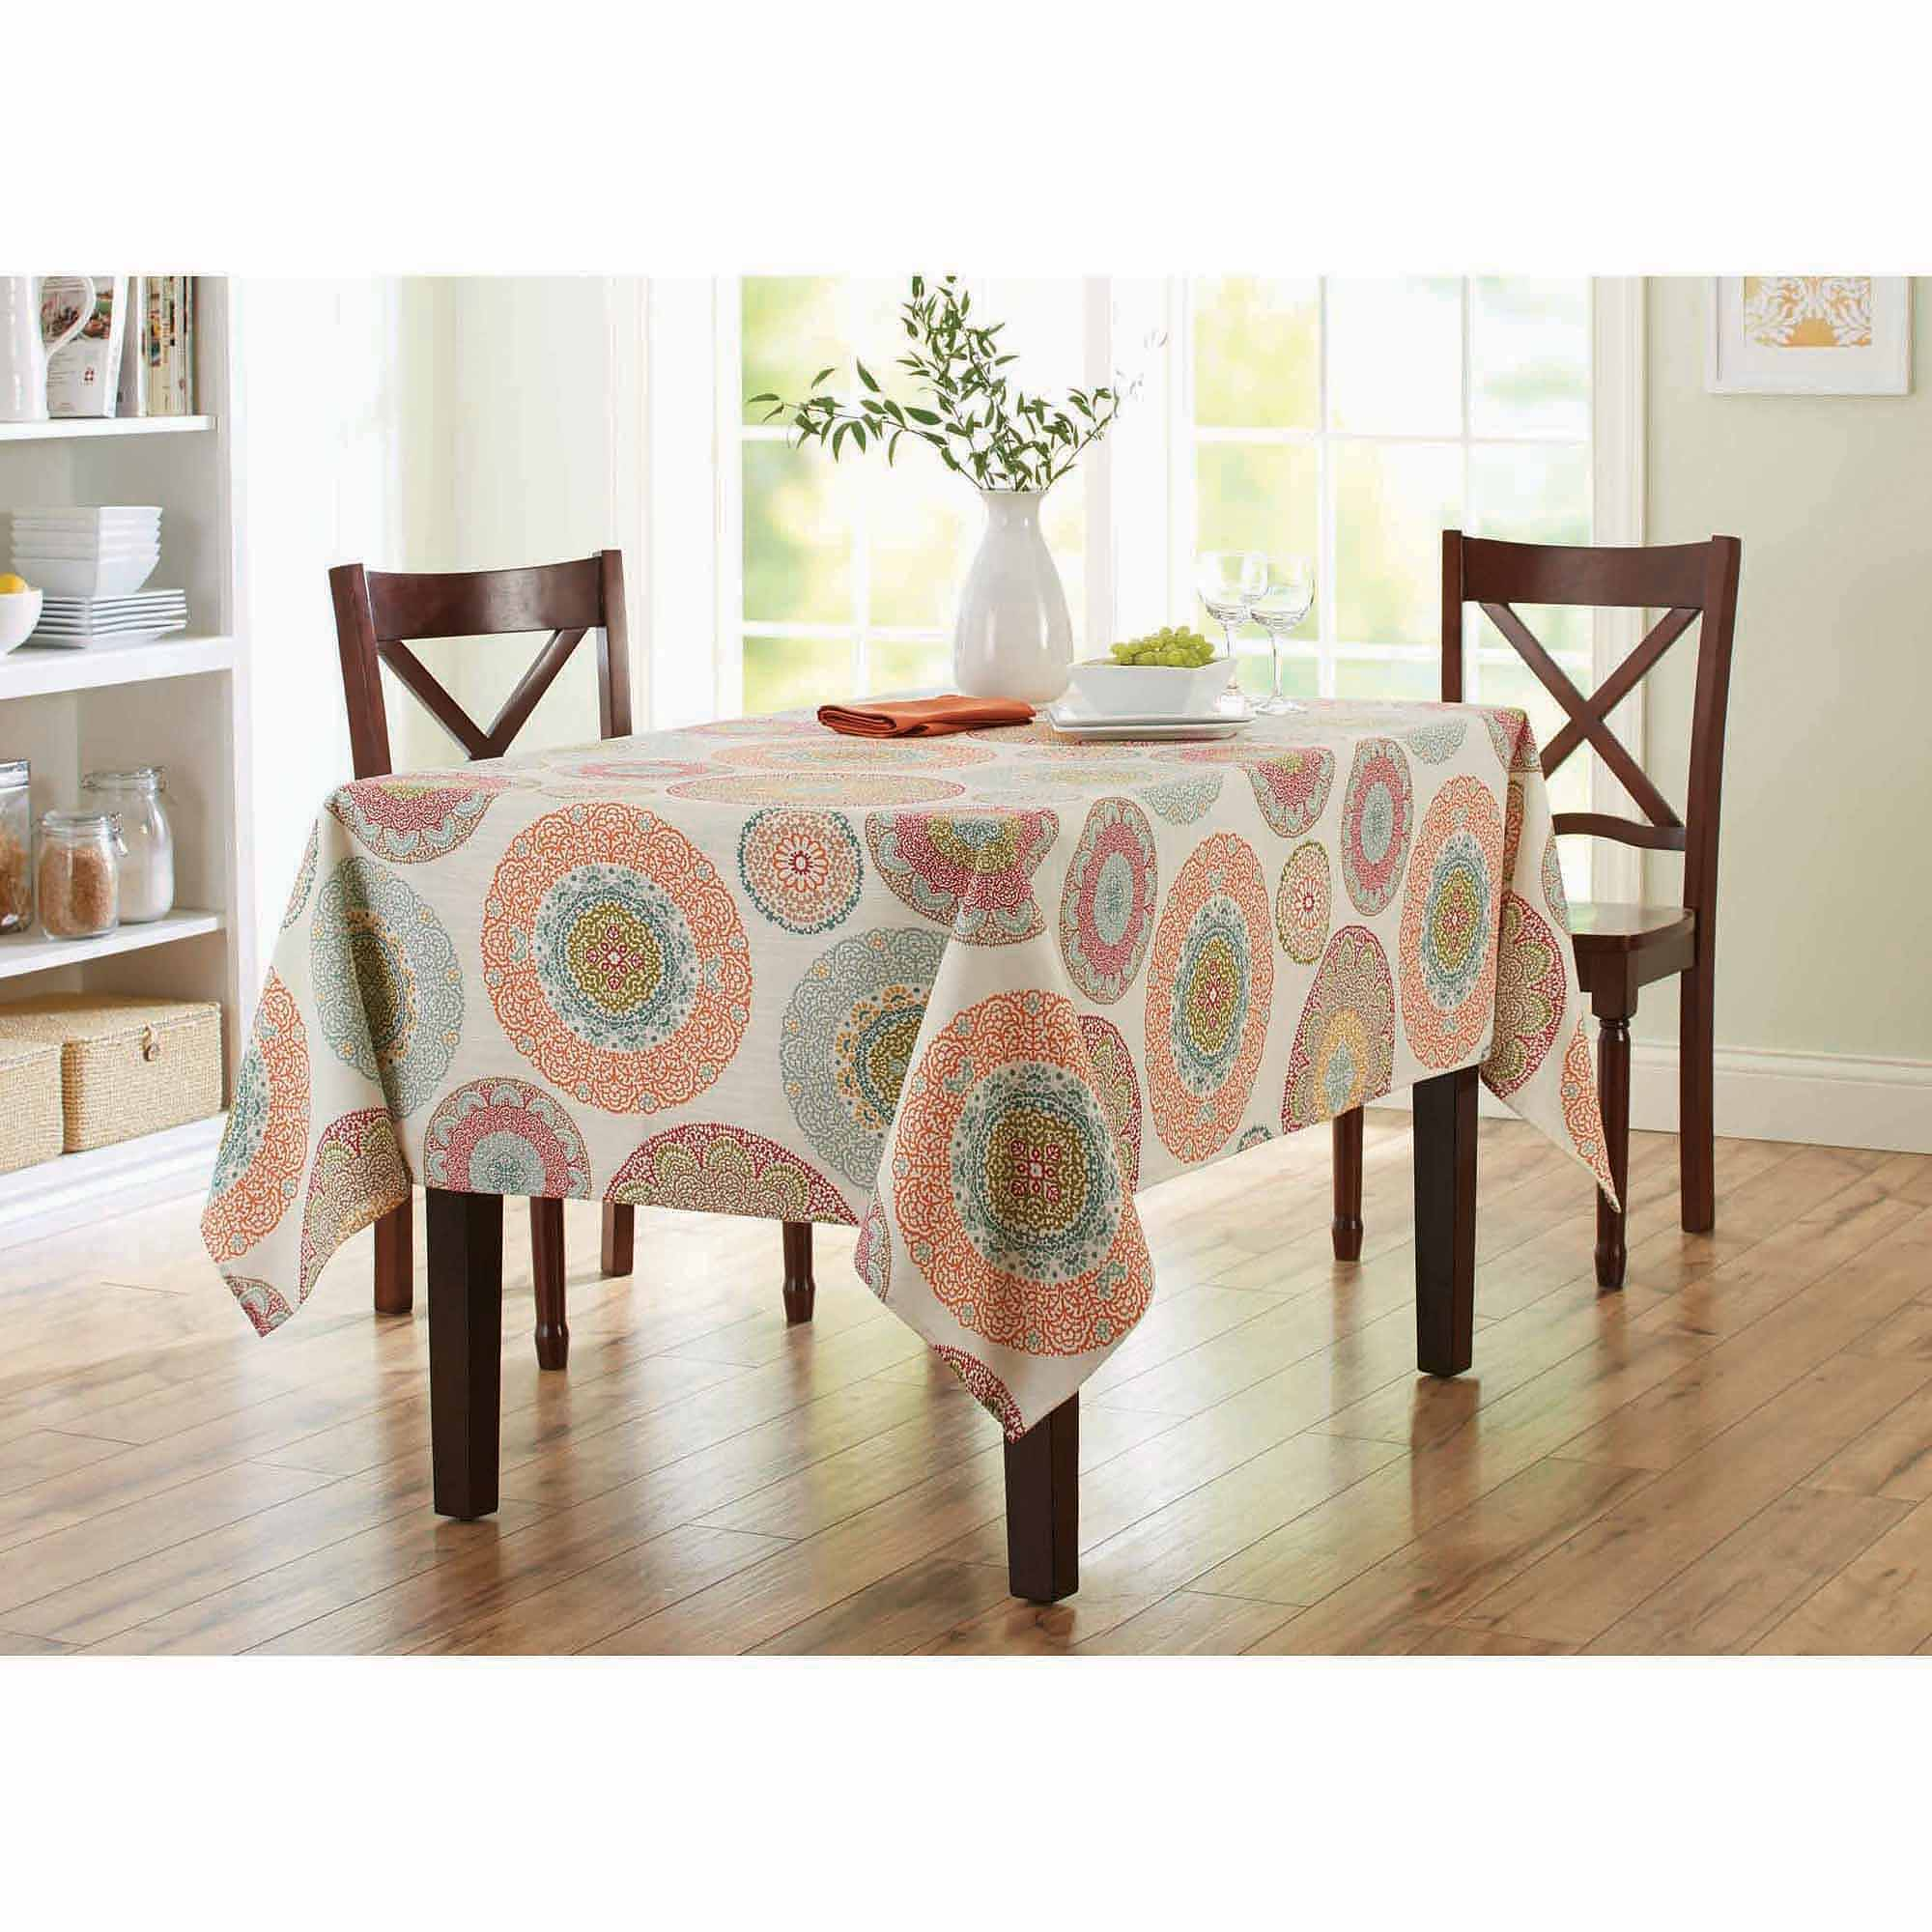 Better Home And Garden peachy better homes and gardens magnificent ideas featured in better homes amp gardens Better Homes And Gardens Lace Medallion Tablecloth Walmartcom